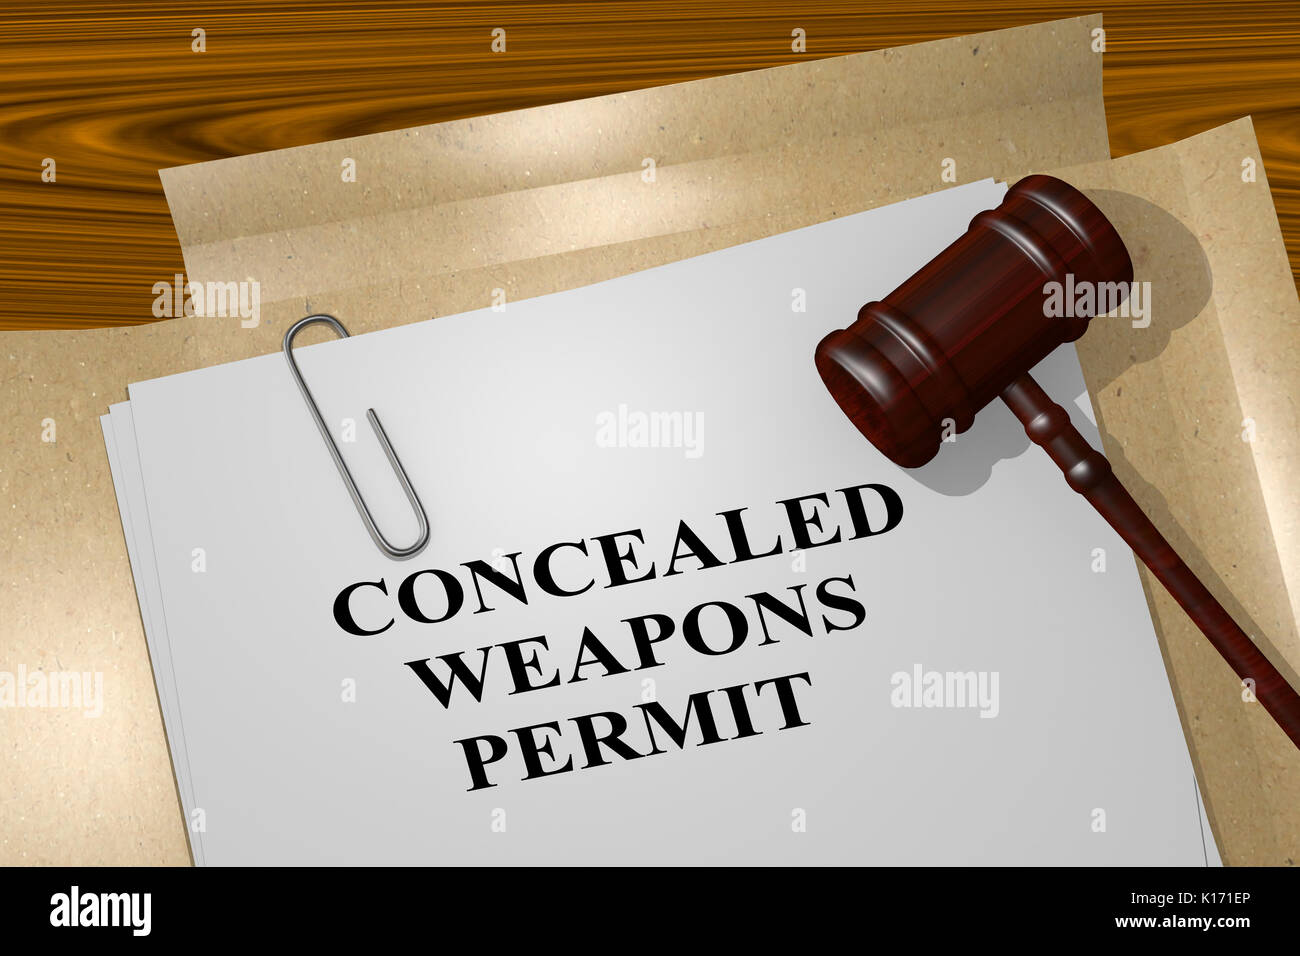 3D illustration of 'CONCEALED WEAPONS PERMIT' title on legal document - Stock Image